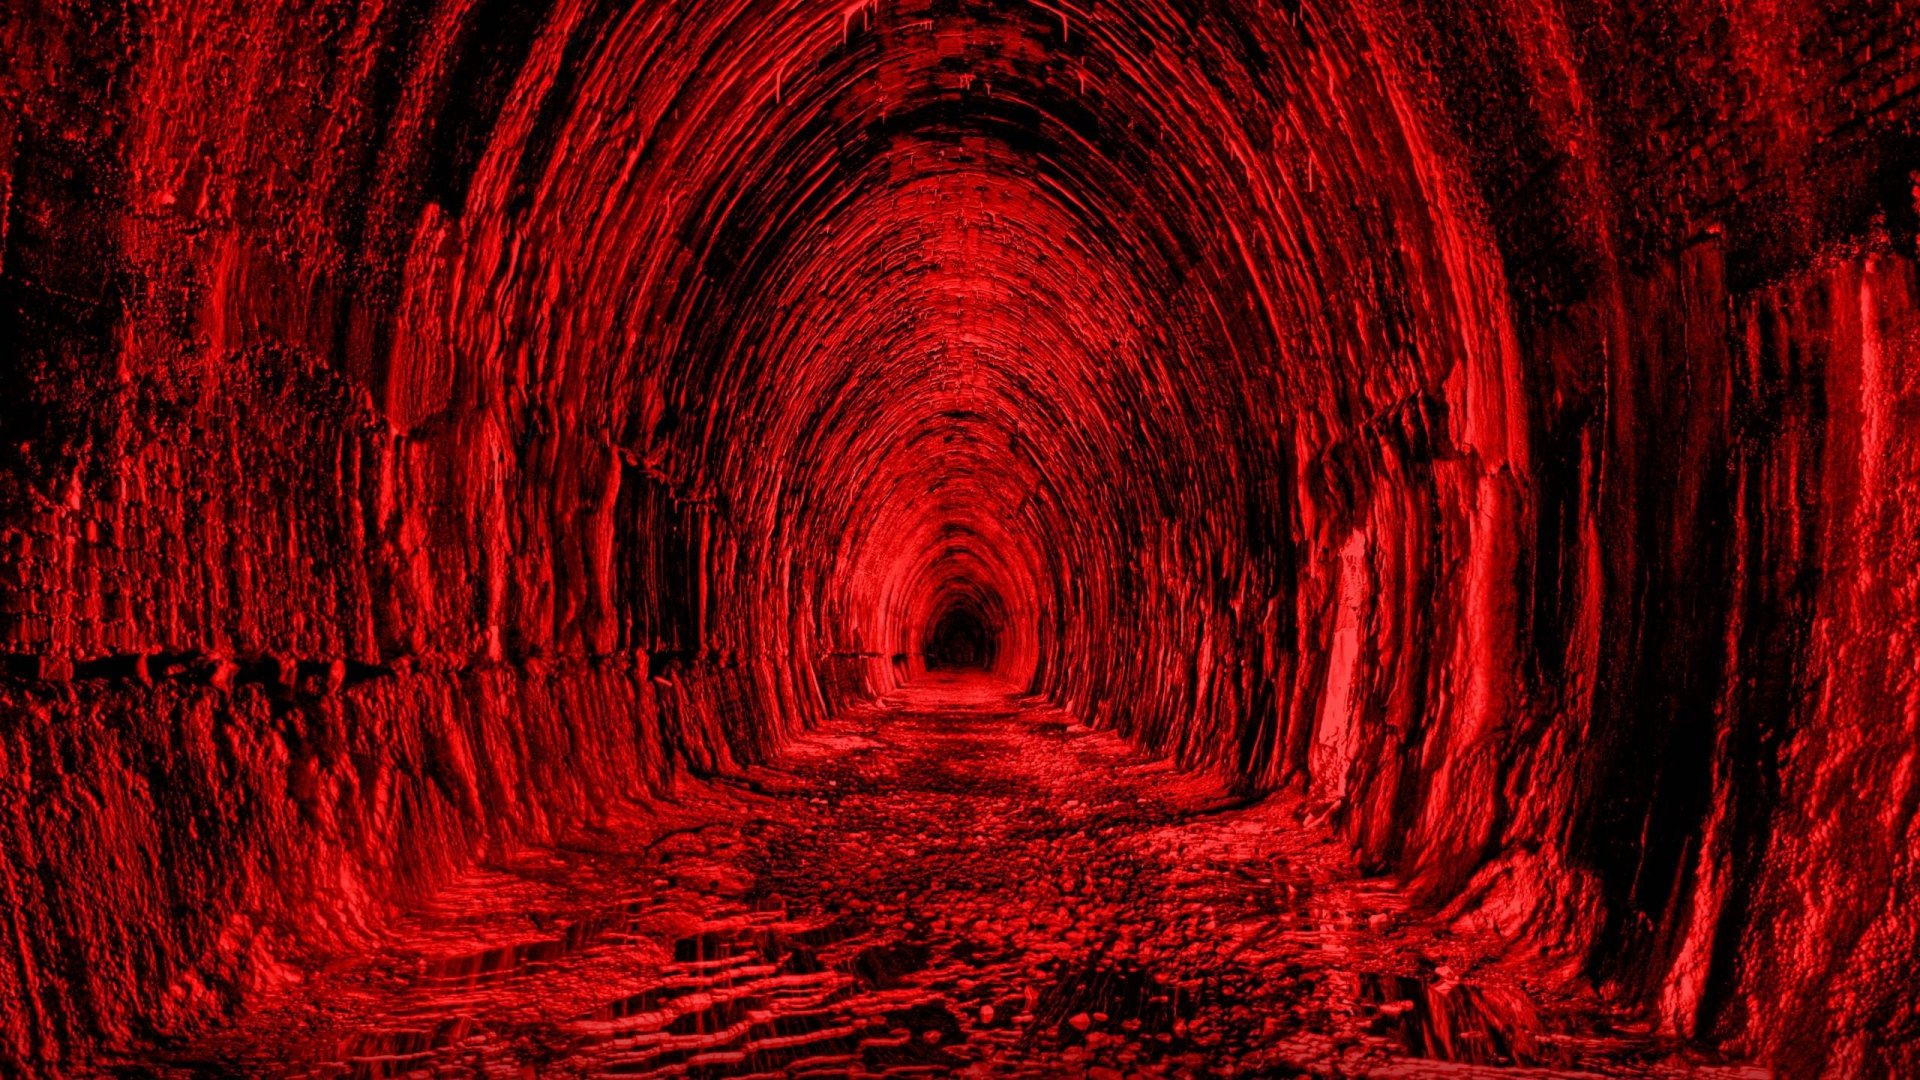 Download 1920x1080 Tunnel Red Black Light Wallpaper Background 1920x1080